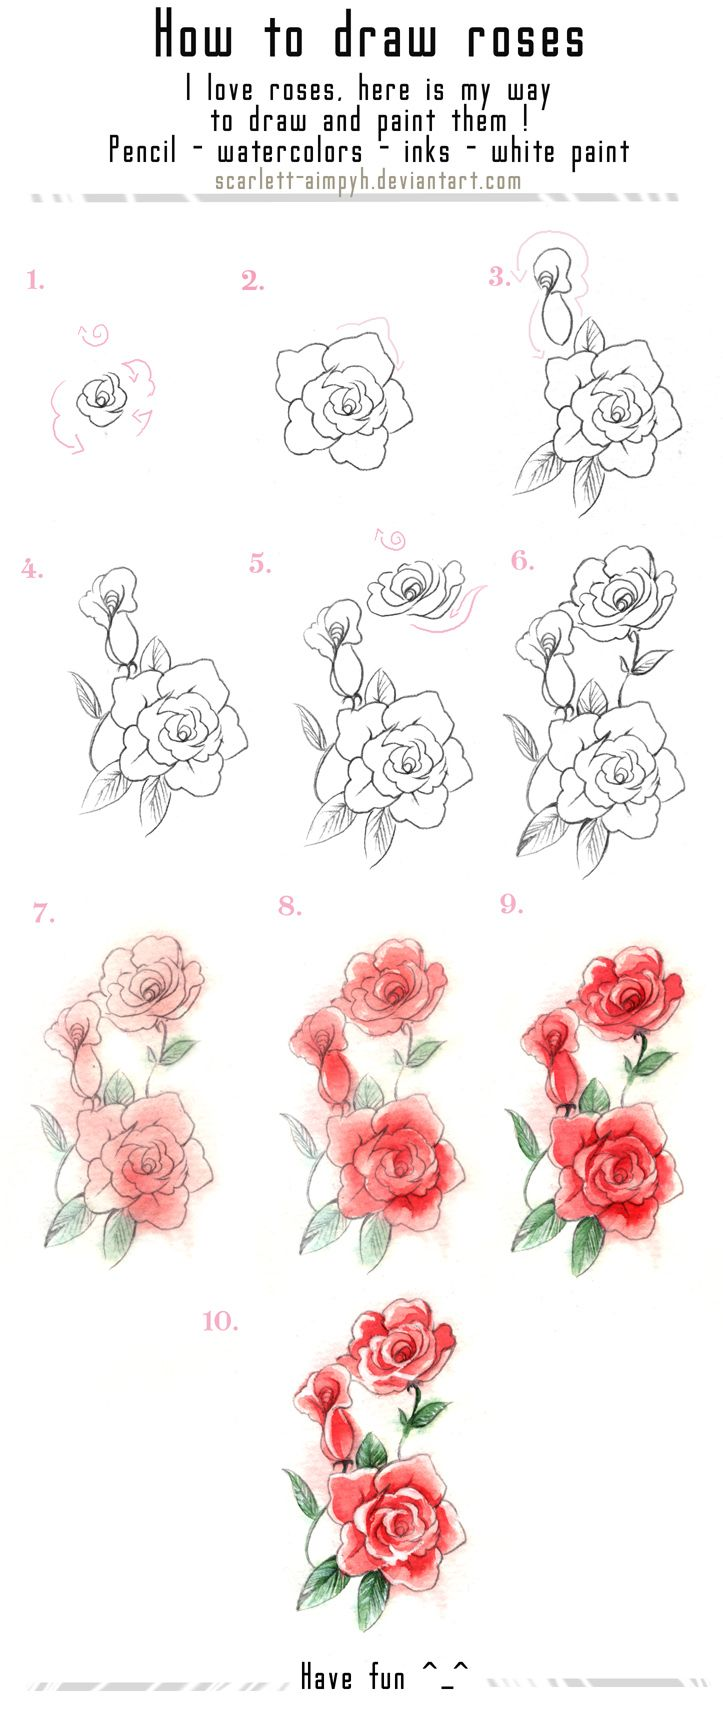 122 - Draw and paint roses by Scarlett-Aimpyh